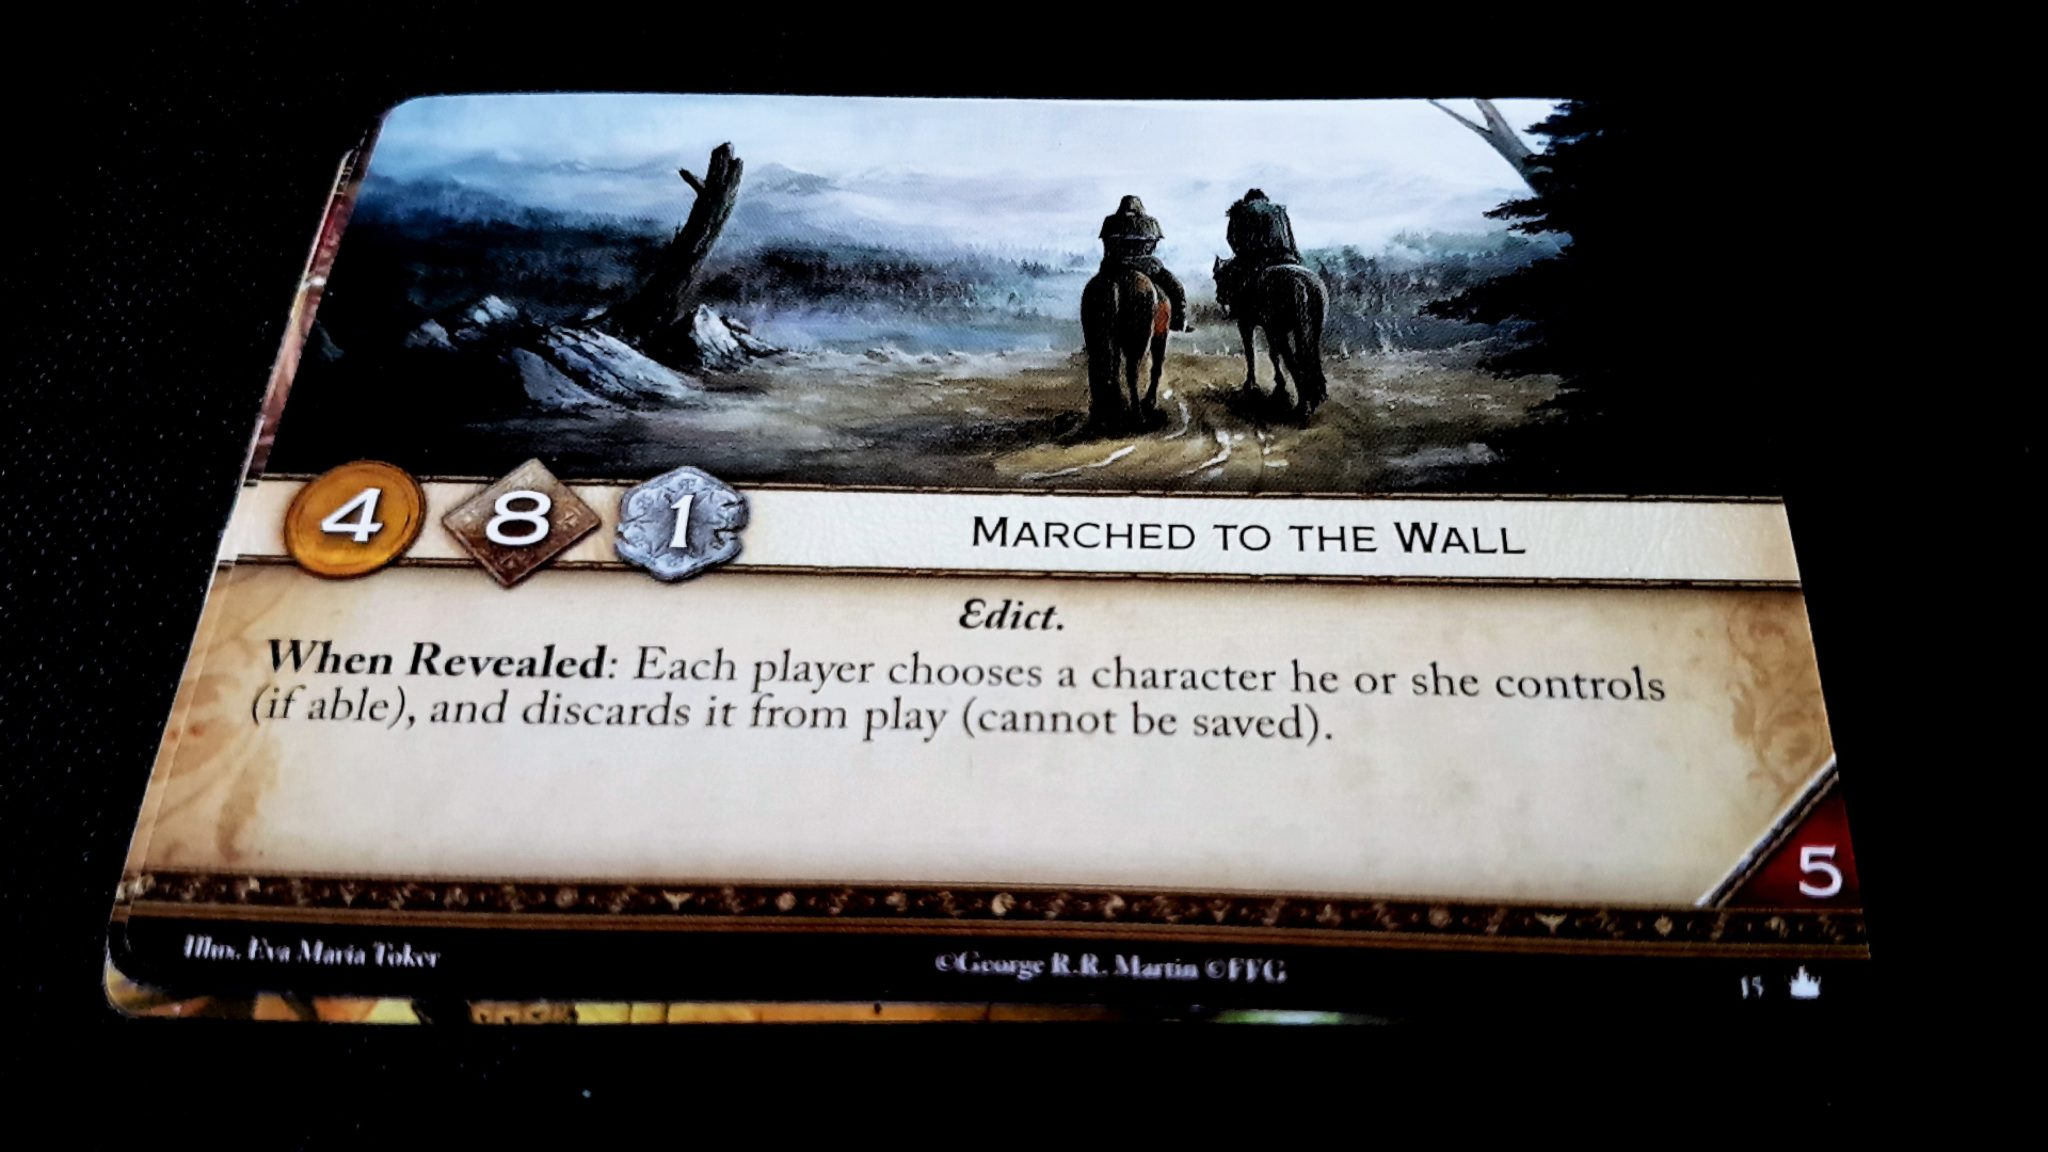 Marched to the Wall